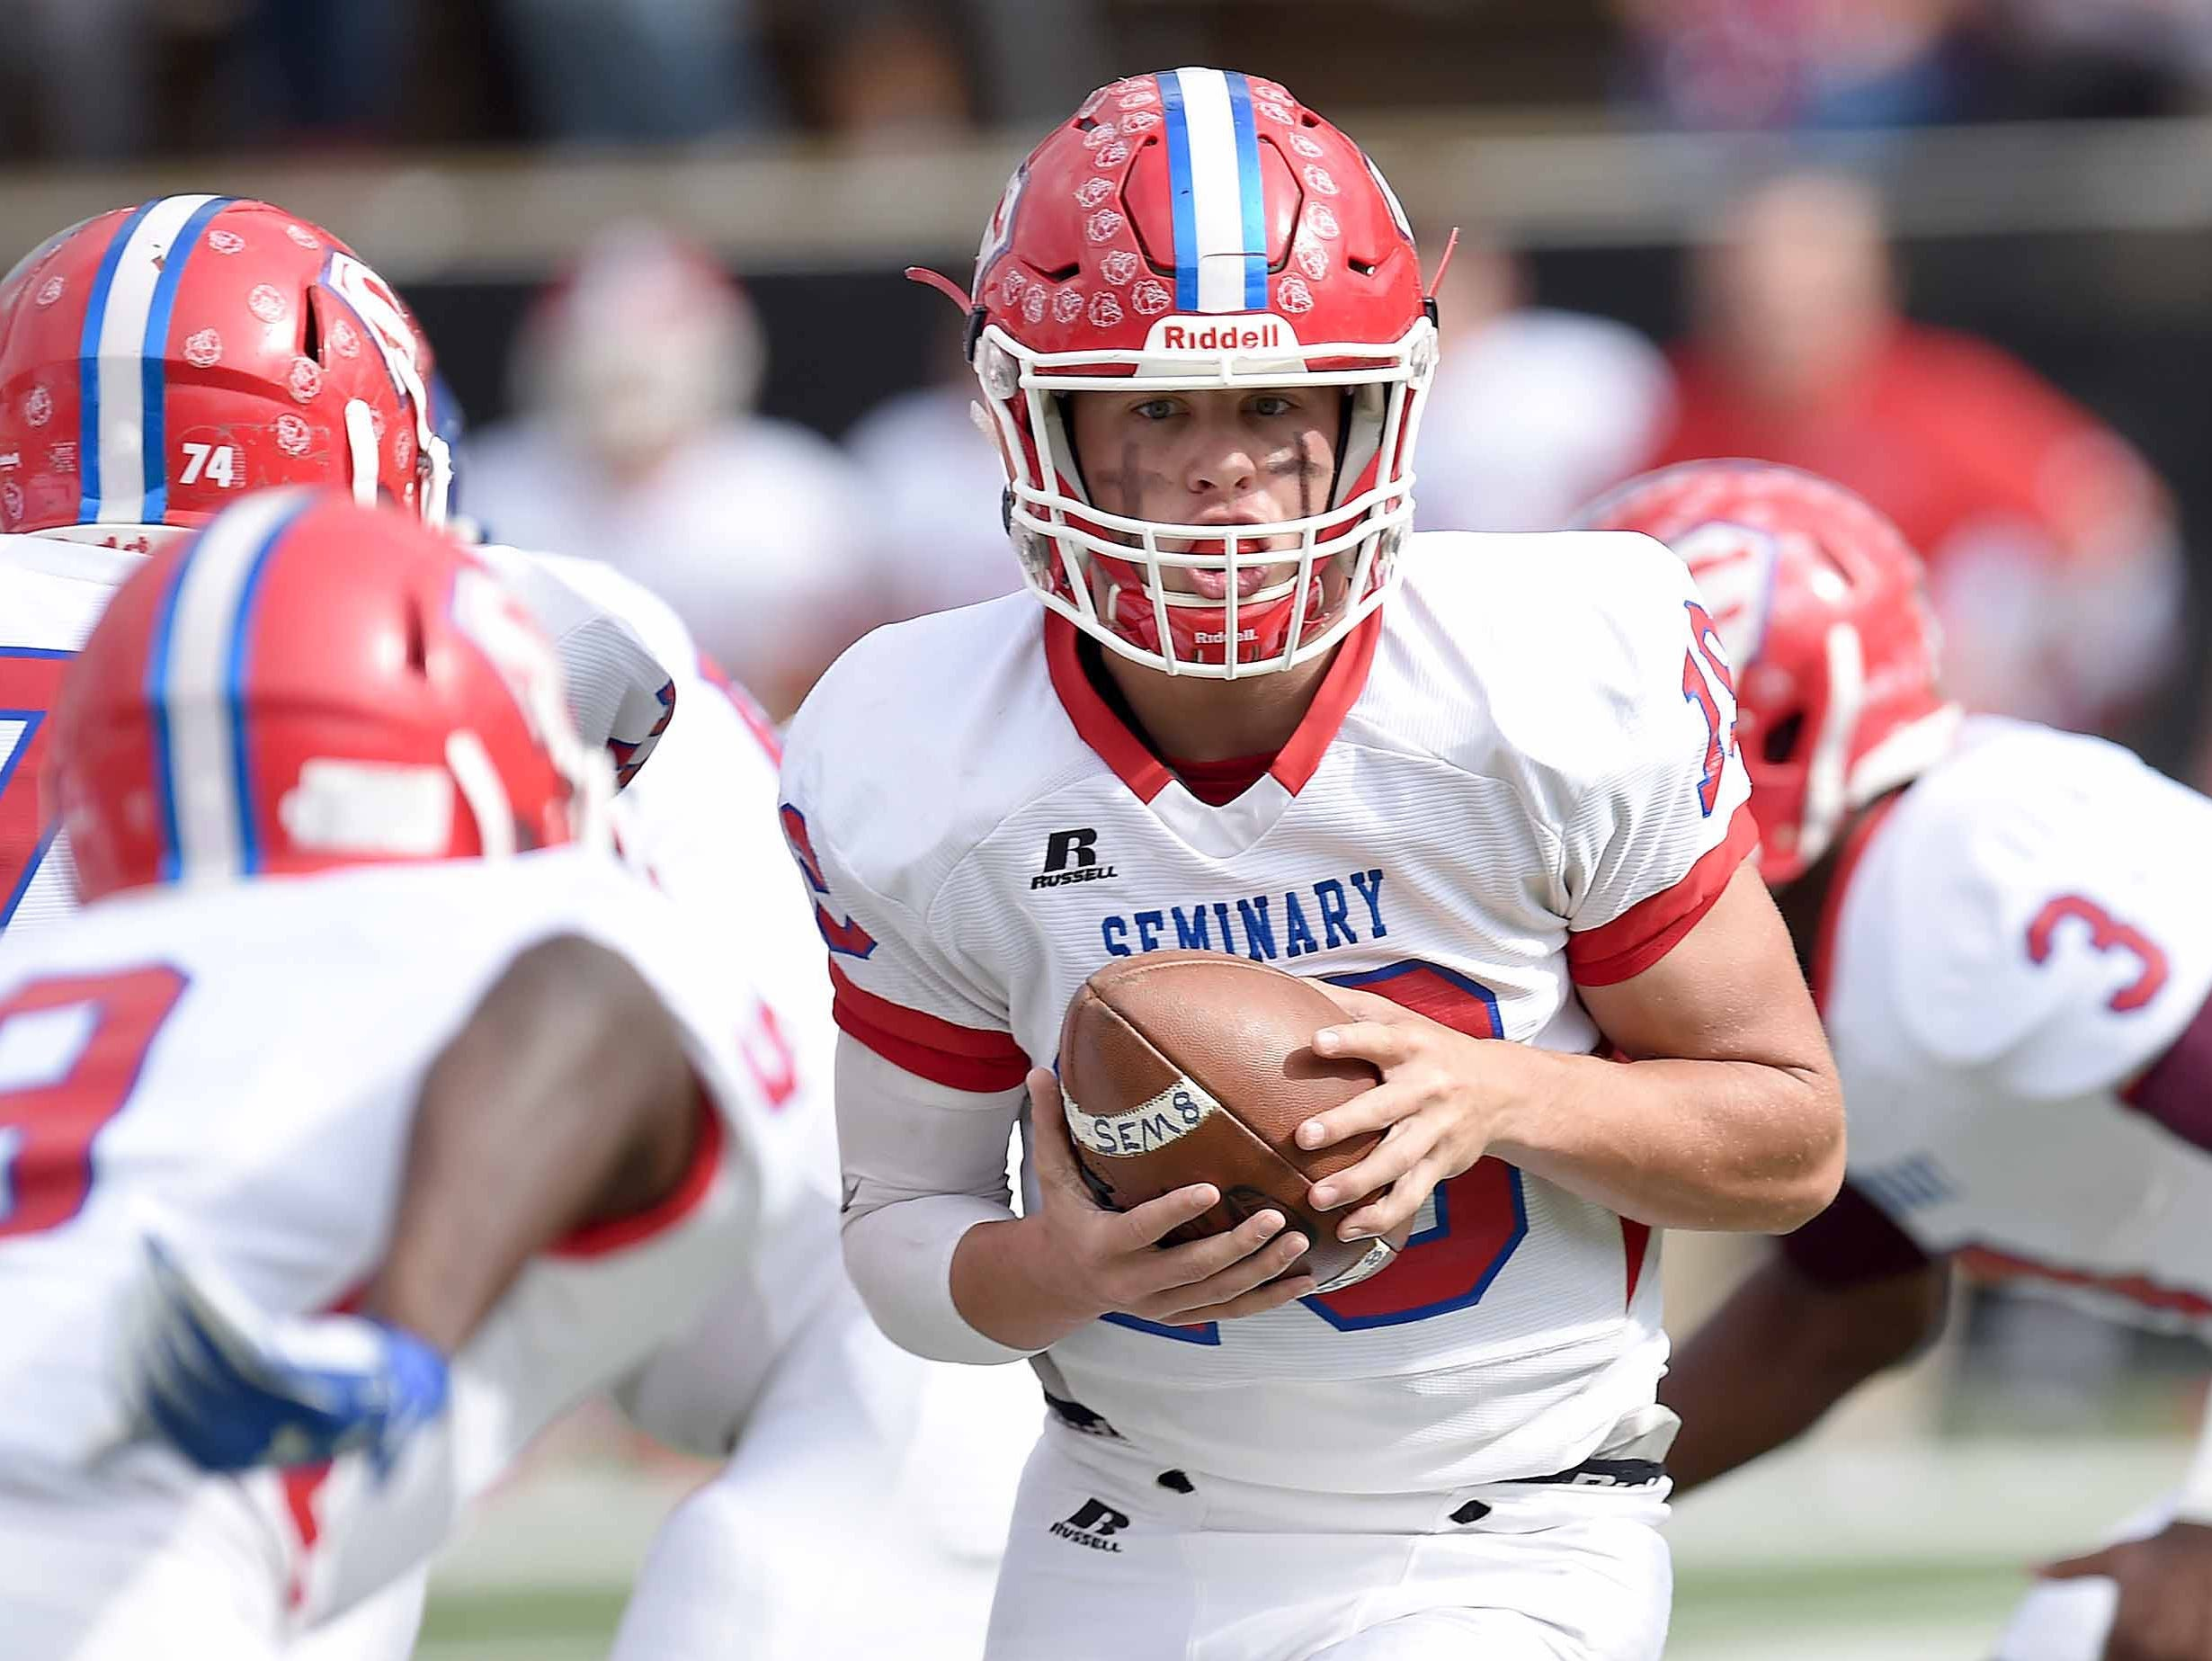 Seminary quarterback Jeff Miller (19) prepares to hand the ball off against Water Valley on Friday, November 20, 2018, in the MHSAA BlueCross BlueShield Gridiron Classic High School Football Championships in M.M. Roberts Stadium on the University of Southern Mississippi campus in Hattiesburg, Miss.